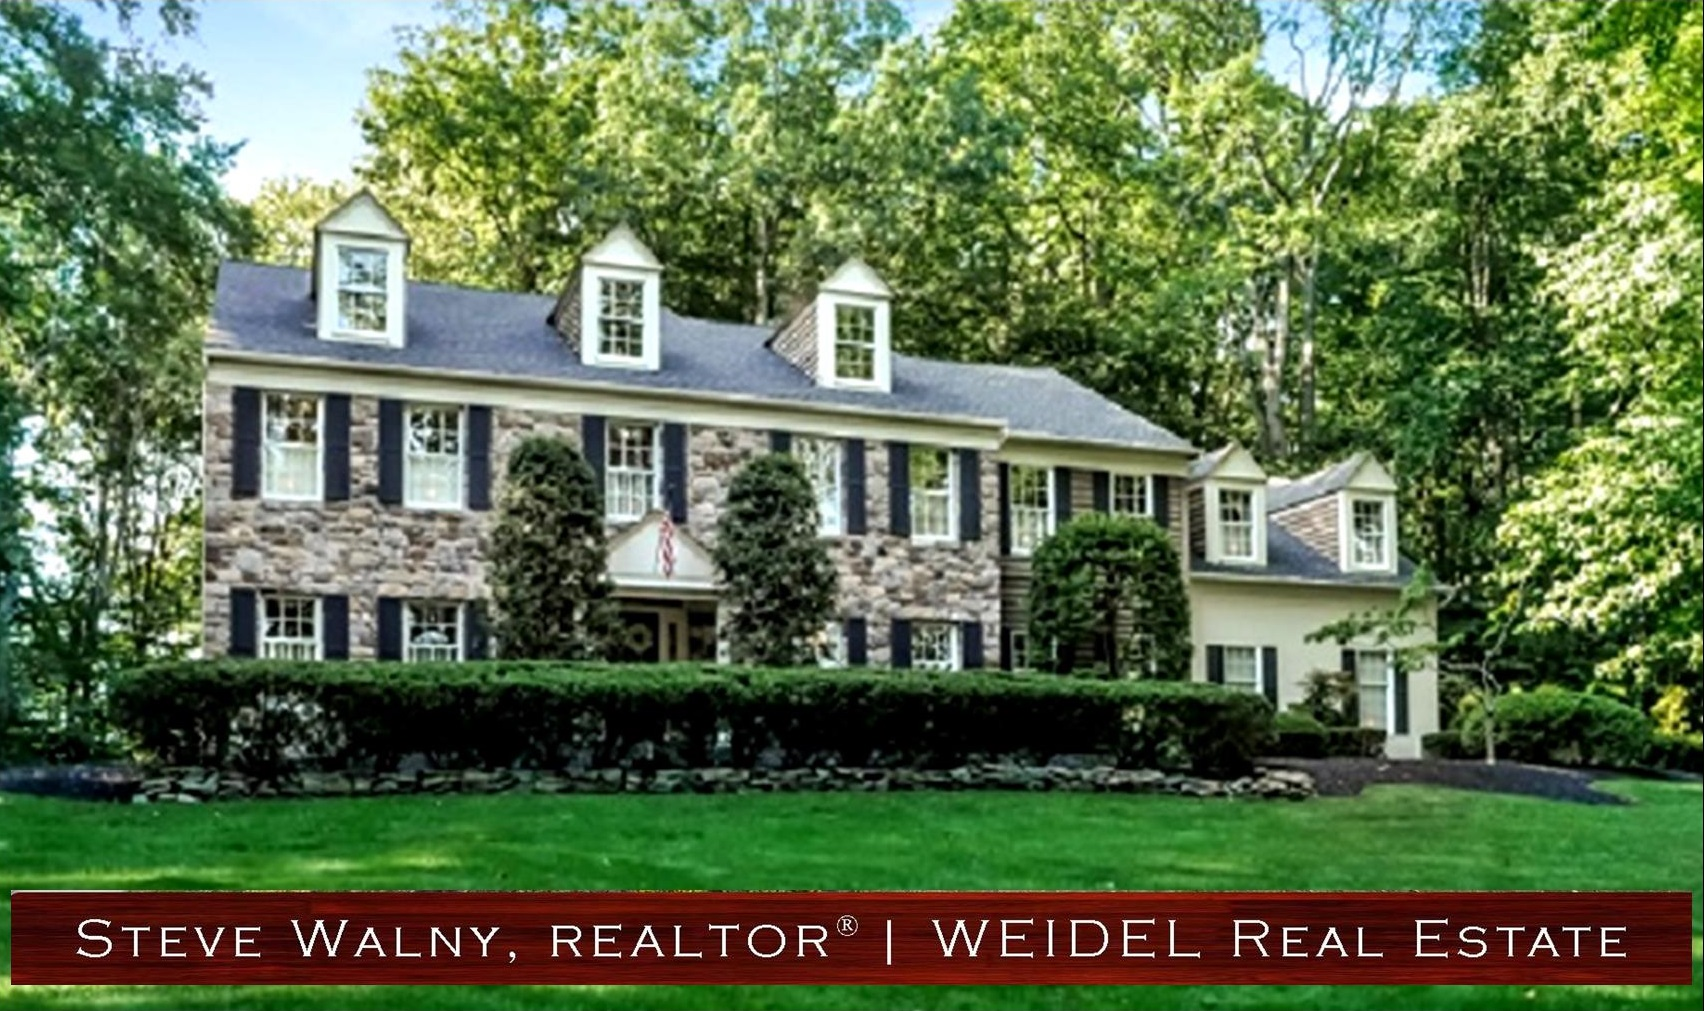 Bucks County Reproduction Farmhouse for Sale | New Hope Realtor | Doylestown Realtor | #NewHope | #Doylestown | @NewHope | @Doylestown